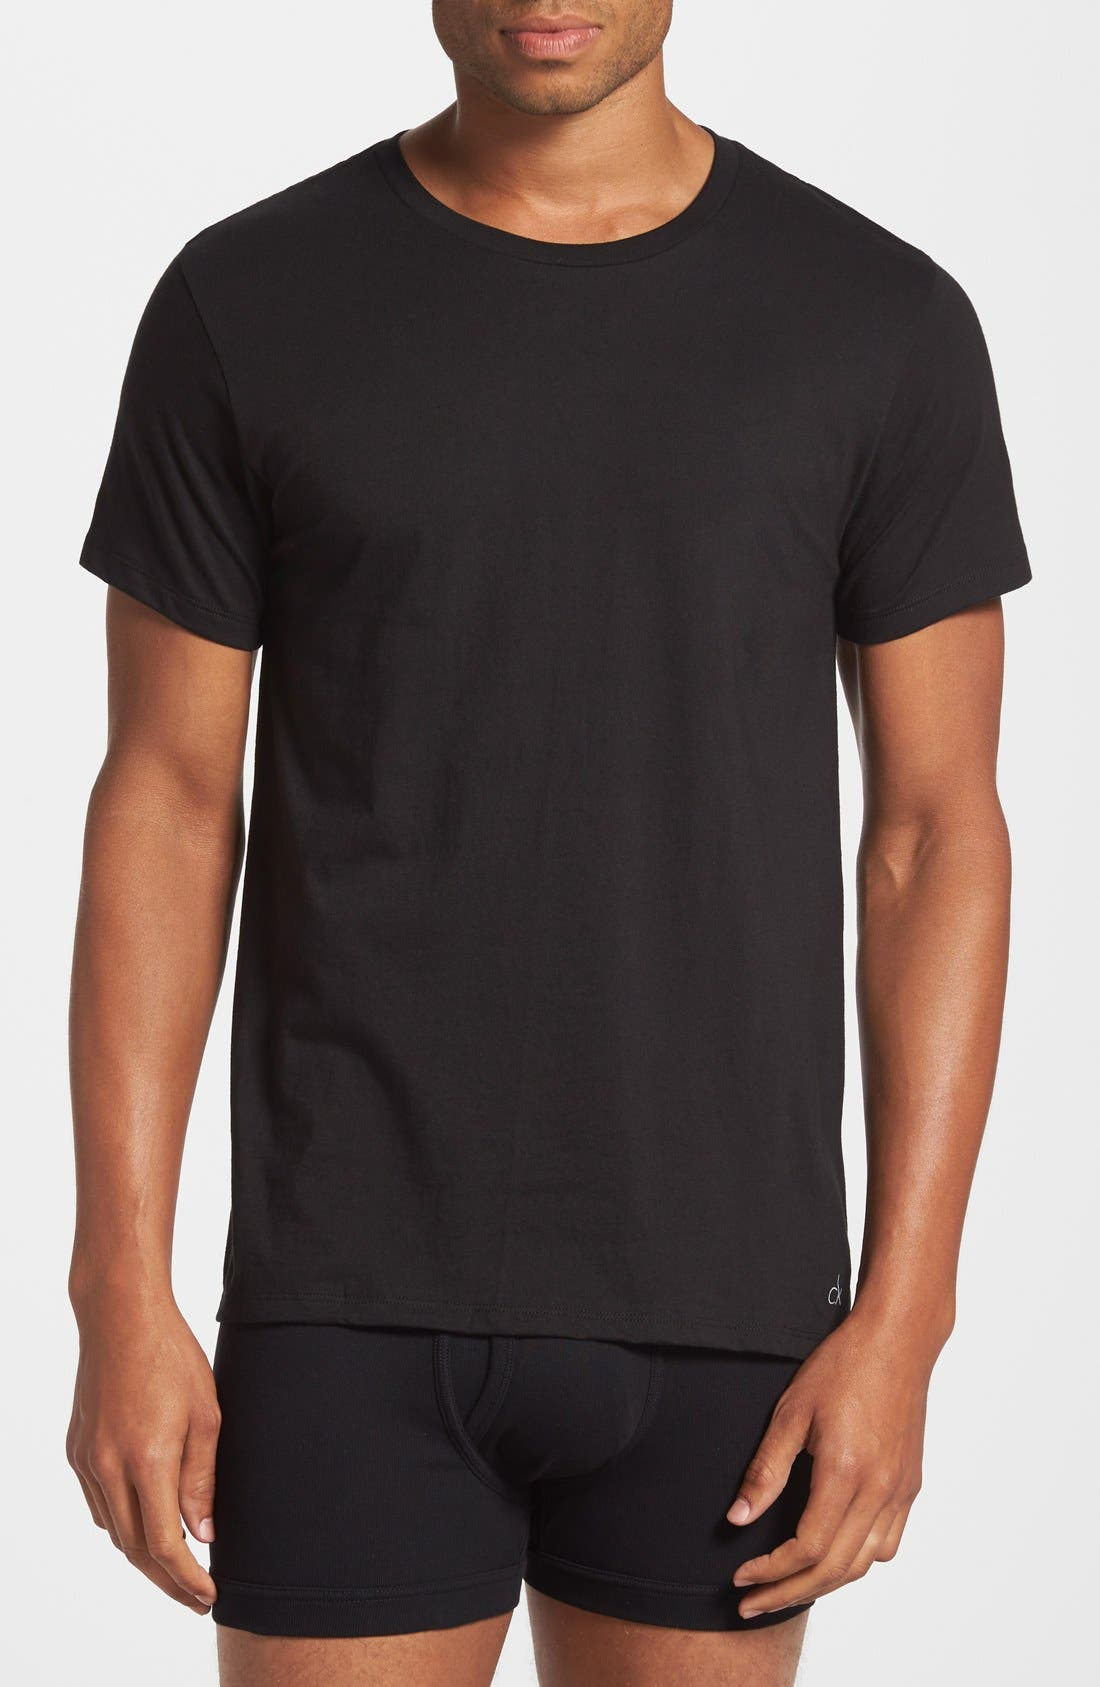 Alternate Image 1 Selected - Calvin Klein 2-Pack Cotton T-Shirt